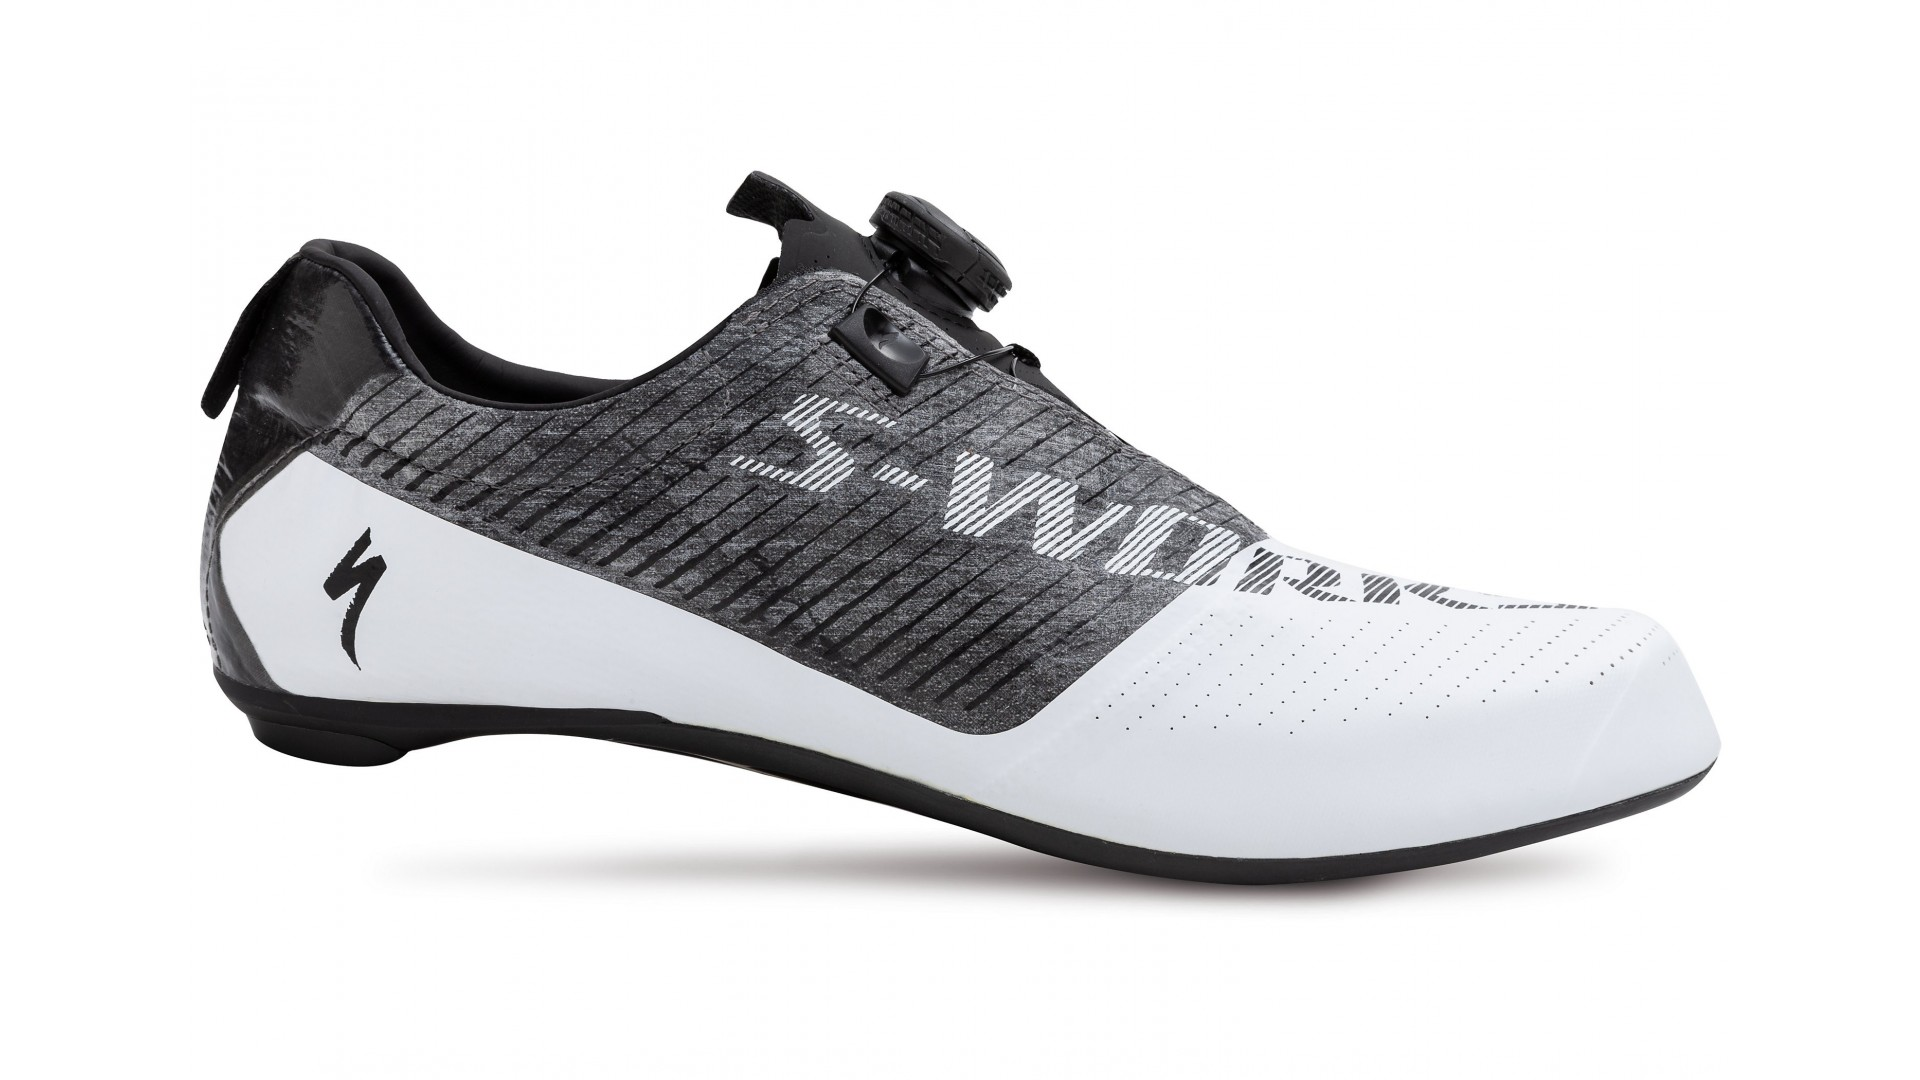 S-Works Exos Road Shoe Specialized White